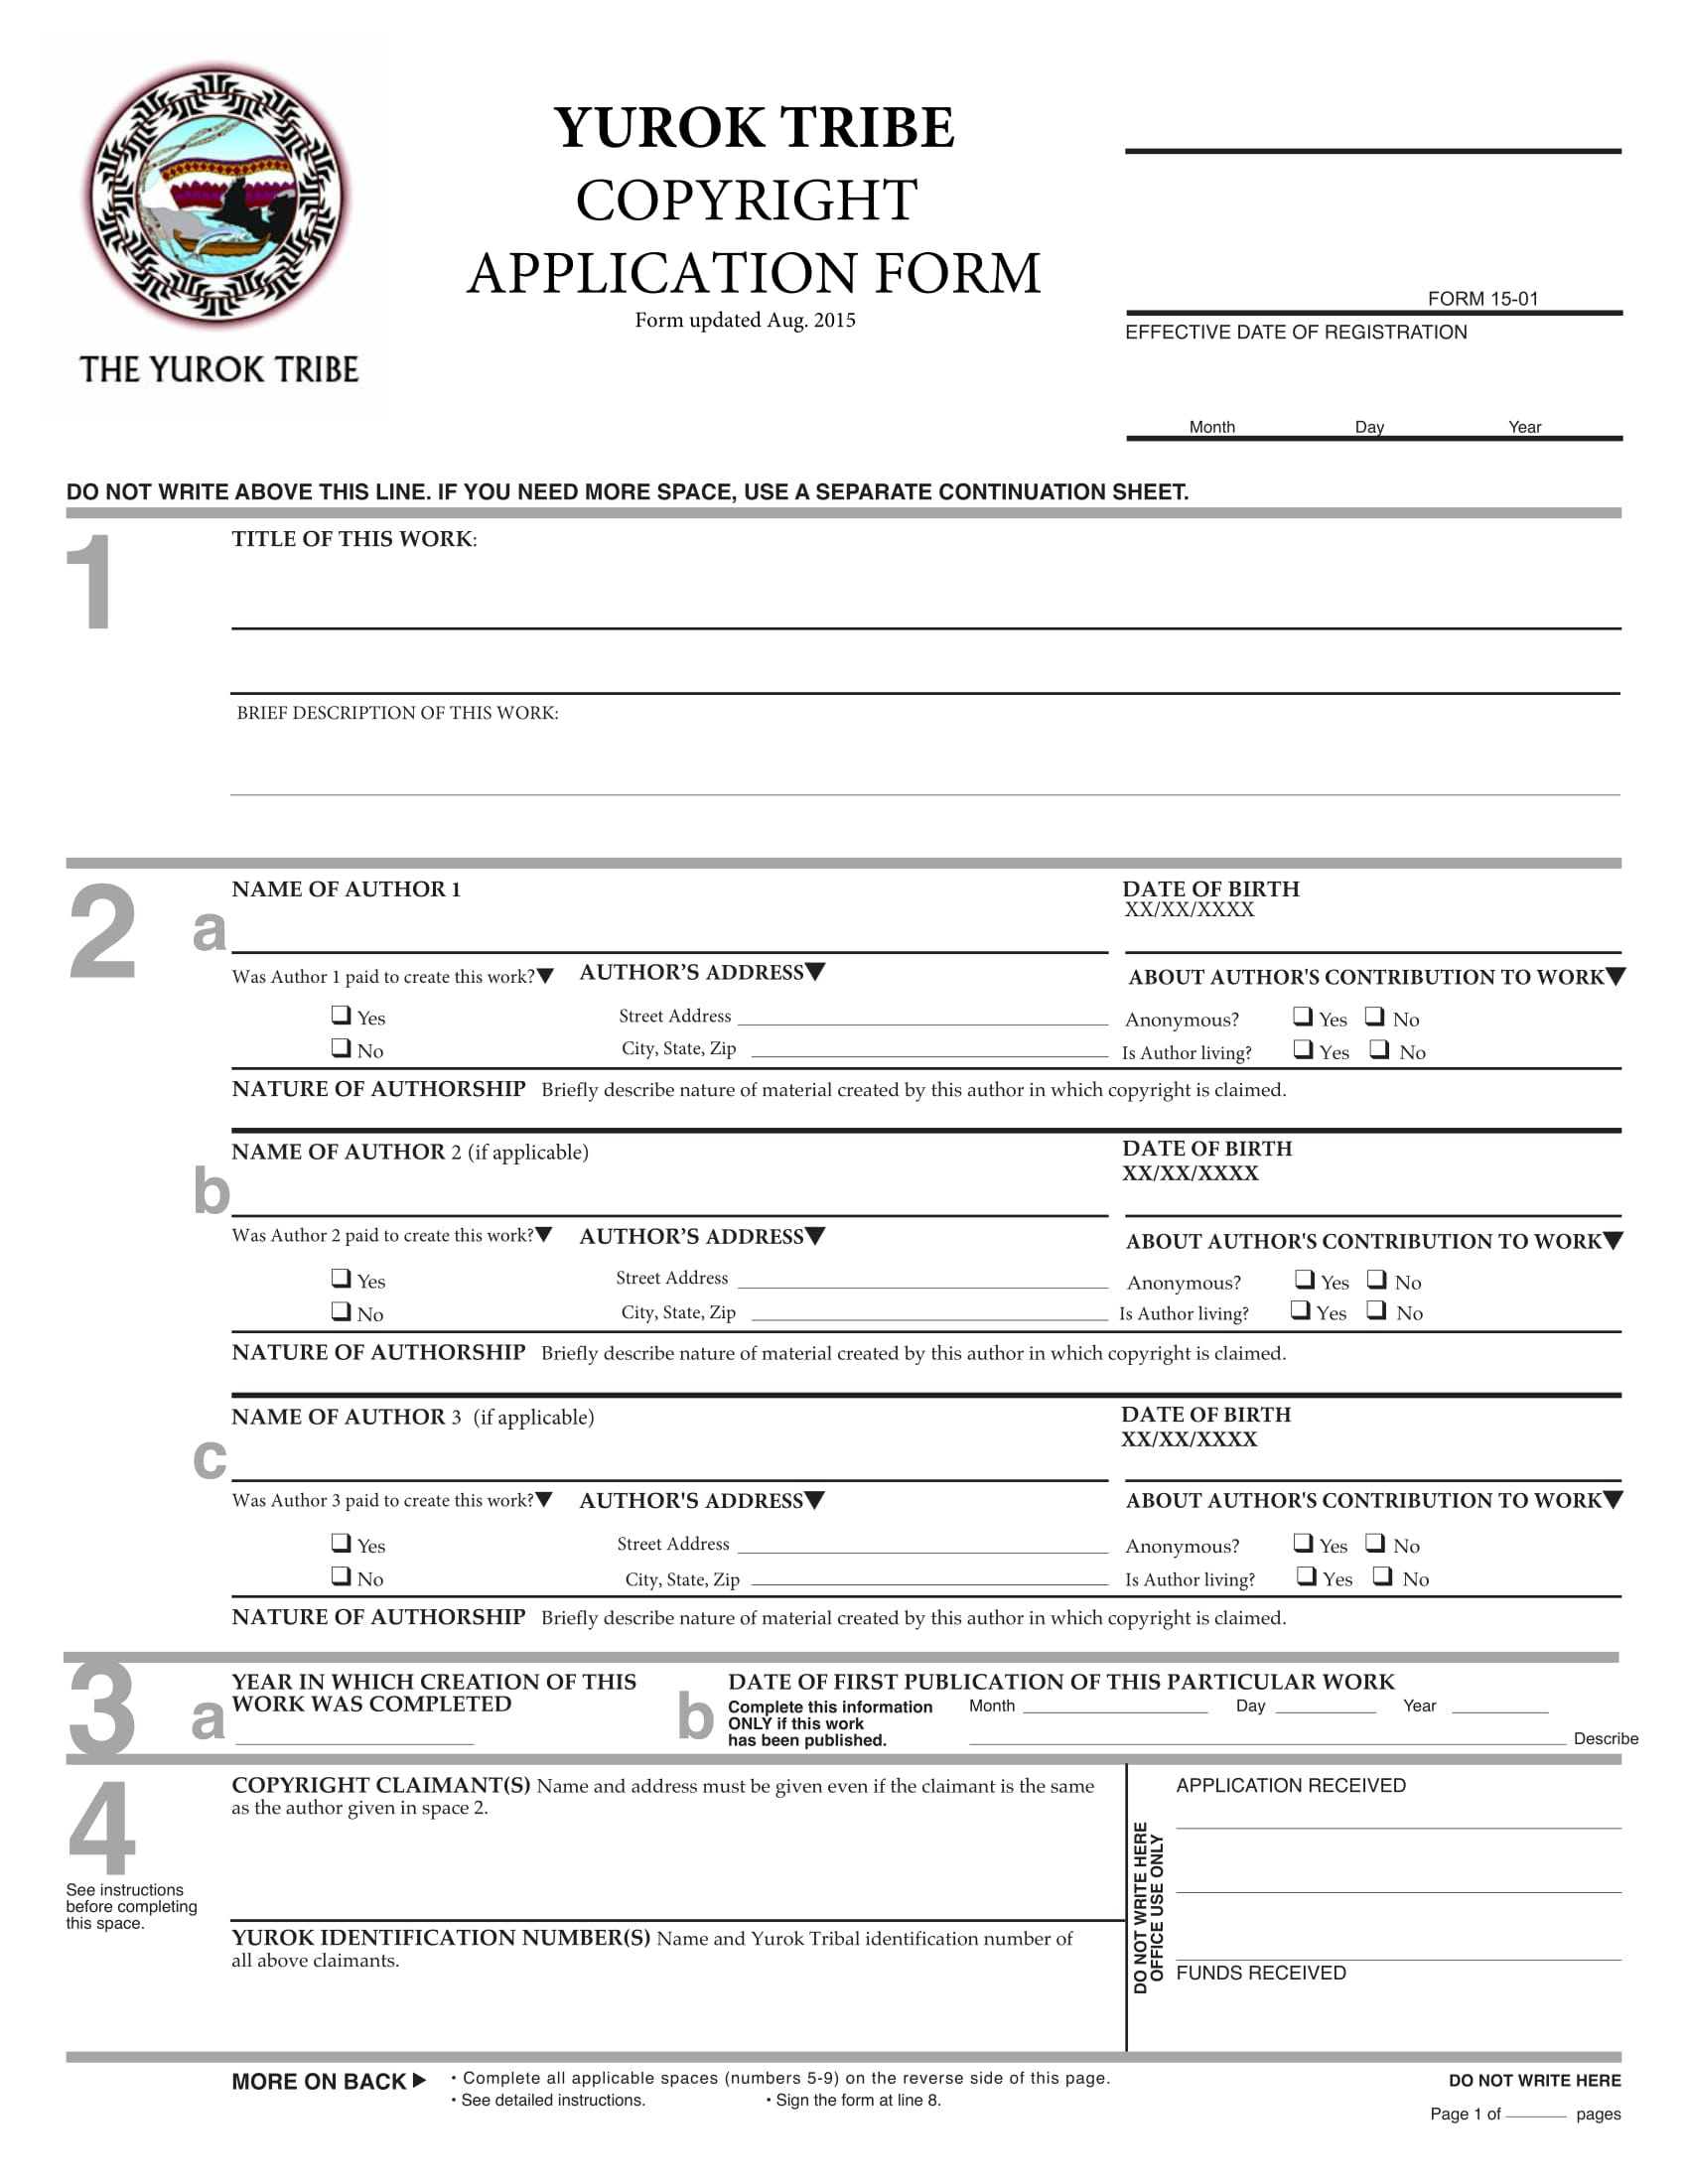 Copyright Registration Form Samples